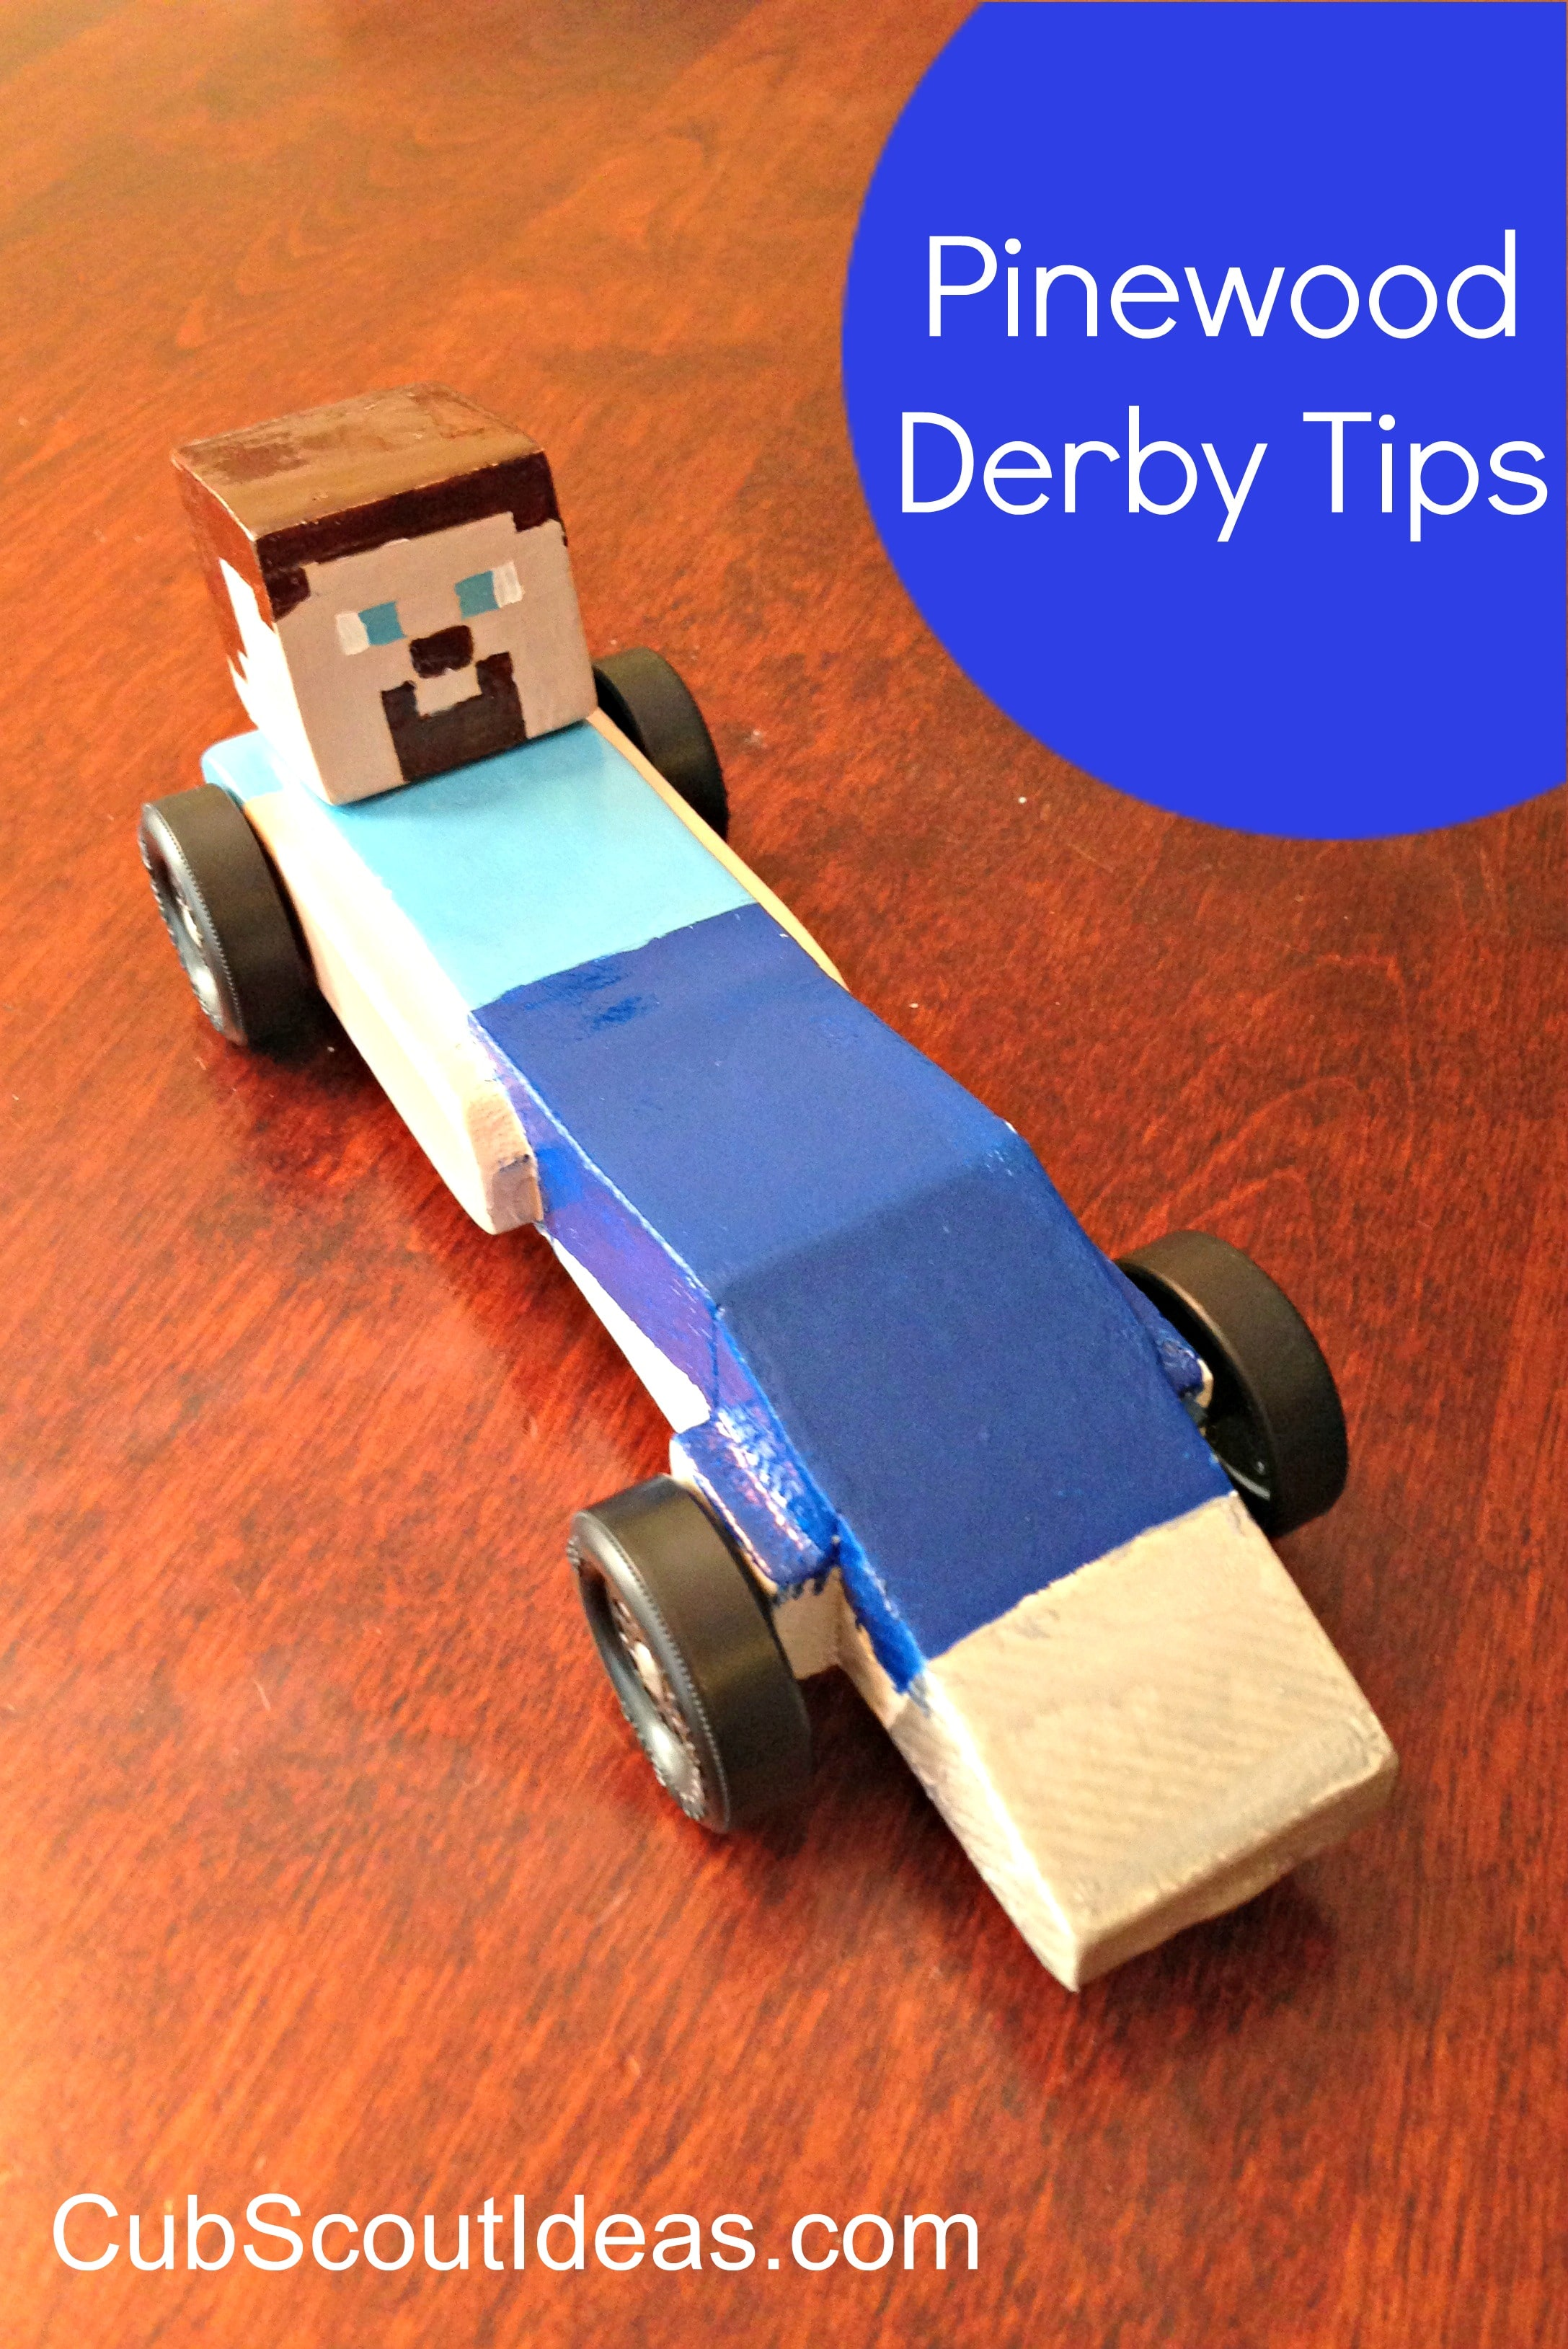 Pinewood derby resources cub scout ideas for Boy scout derby car templates